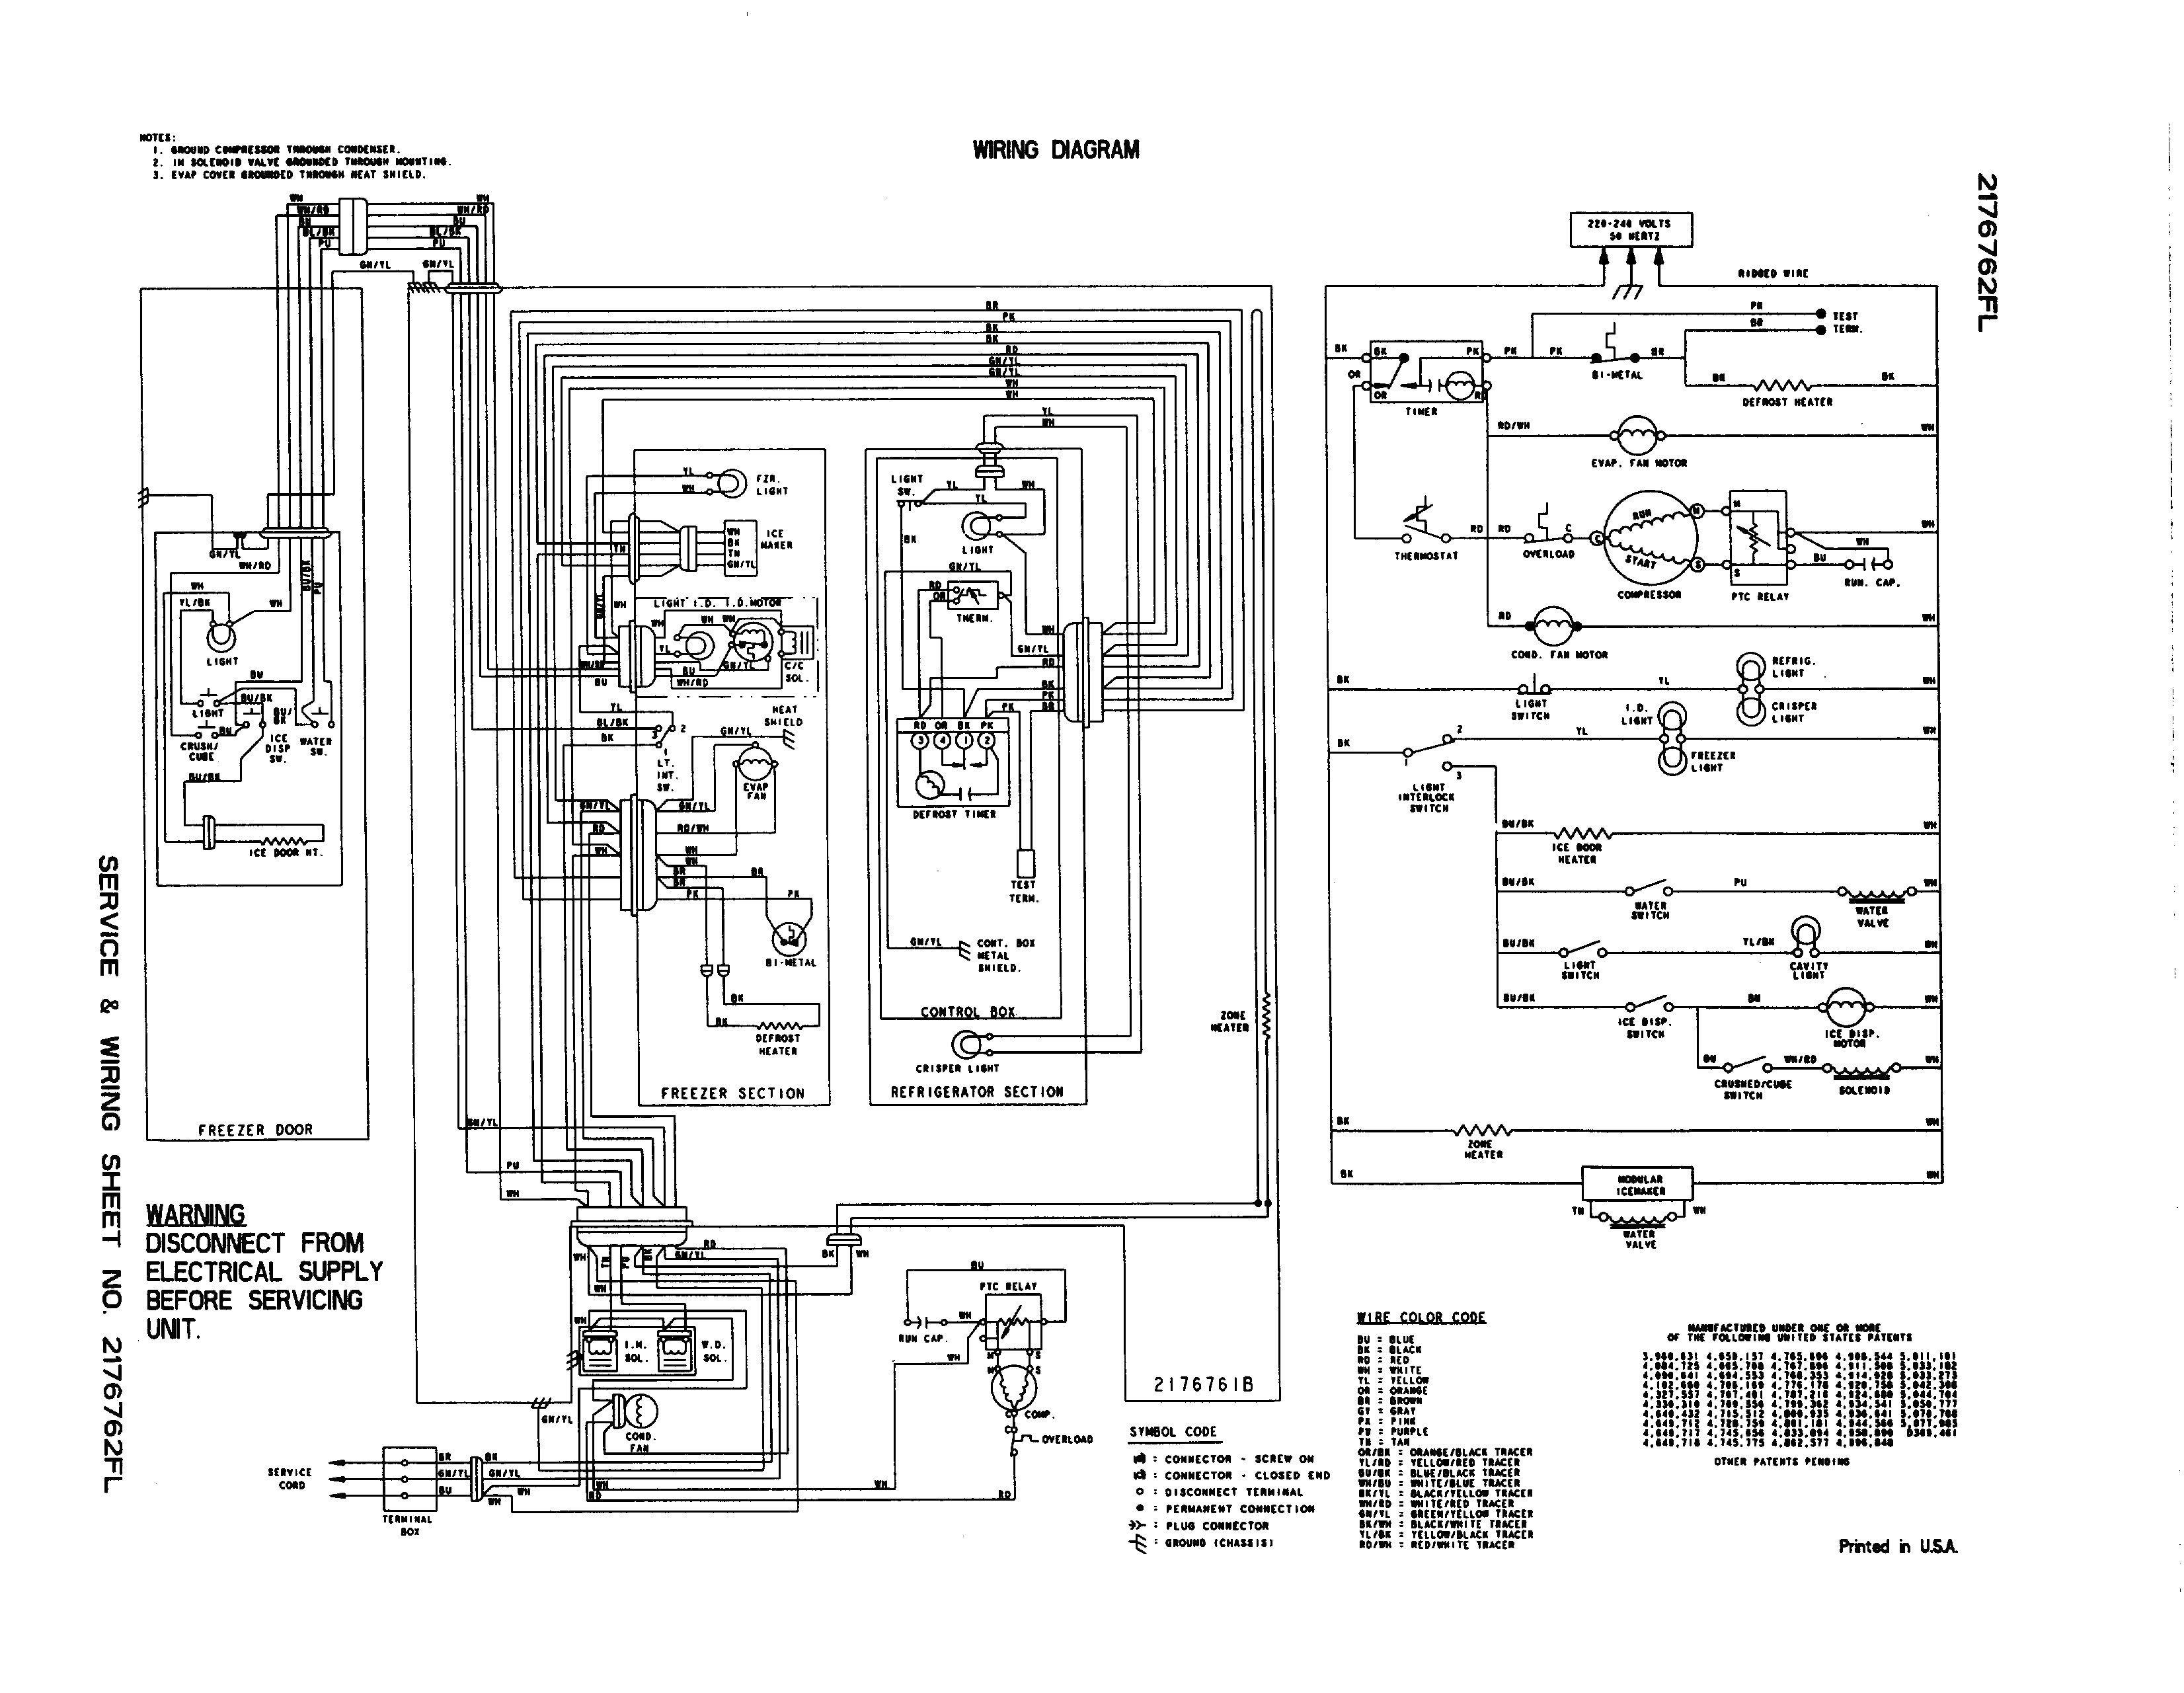 220 Wiring Diagram For Dryer